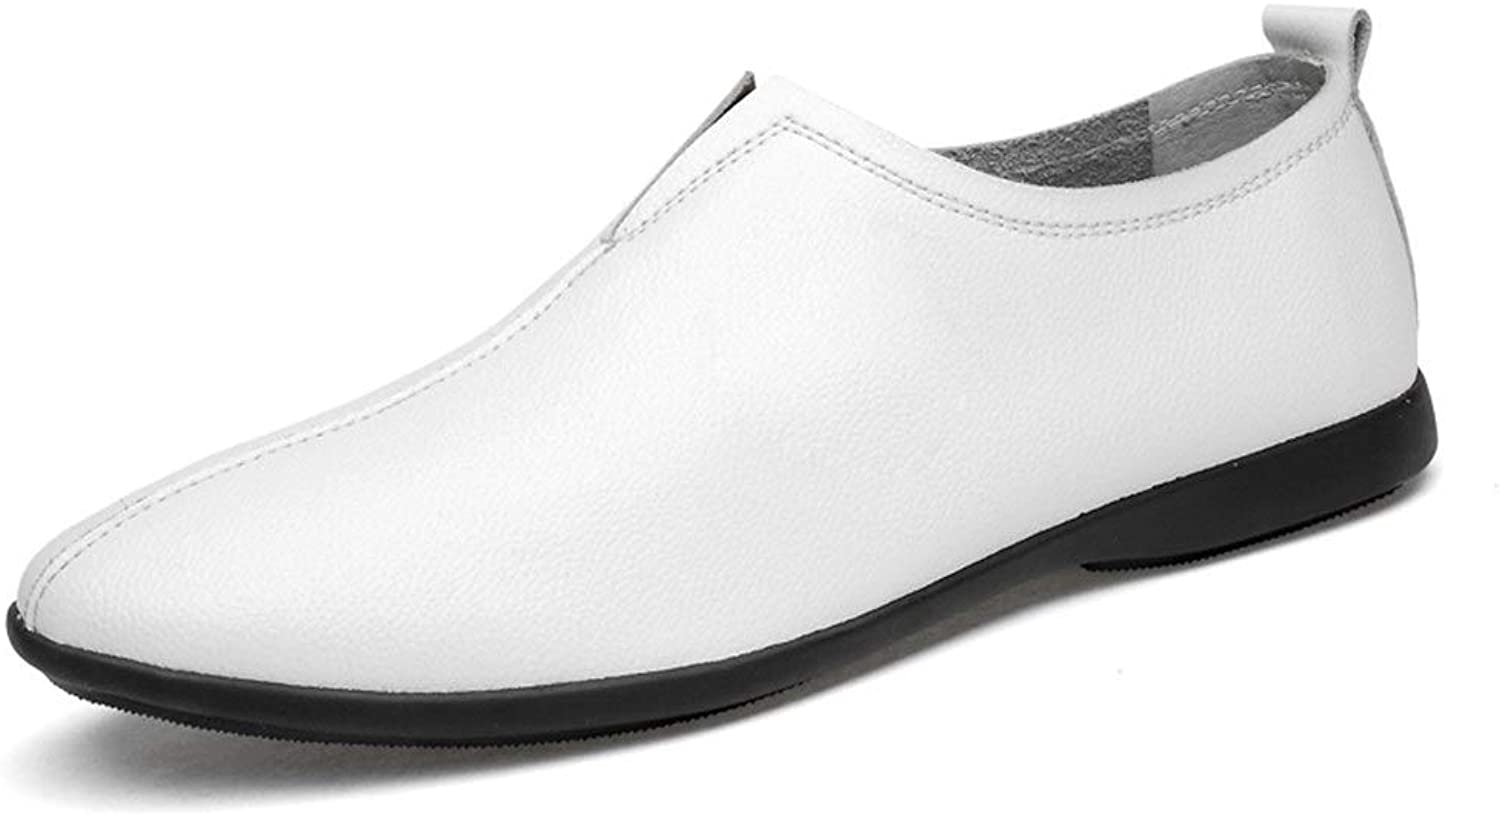 Ino Oxford shoes for Men Genuine Leather Business Coif Wedding Loafers Breathable Lightweight Thin Anti-Slip Flat Slip-on Troll Toe